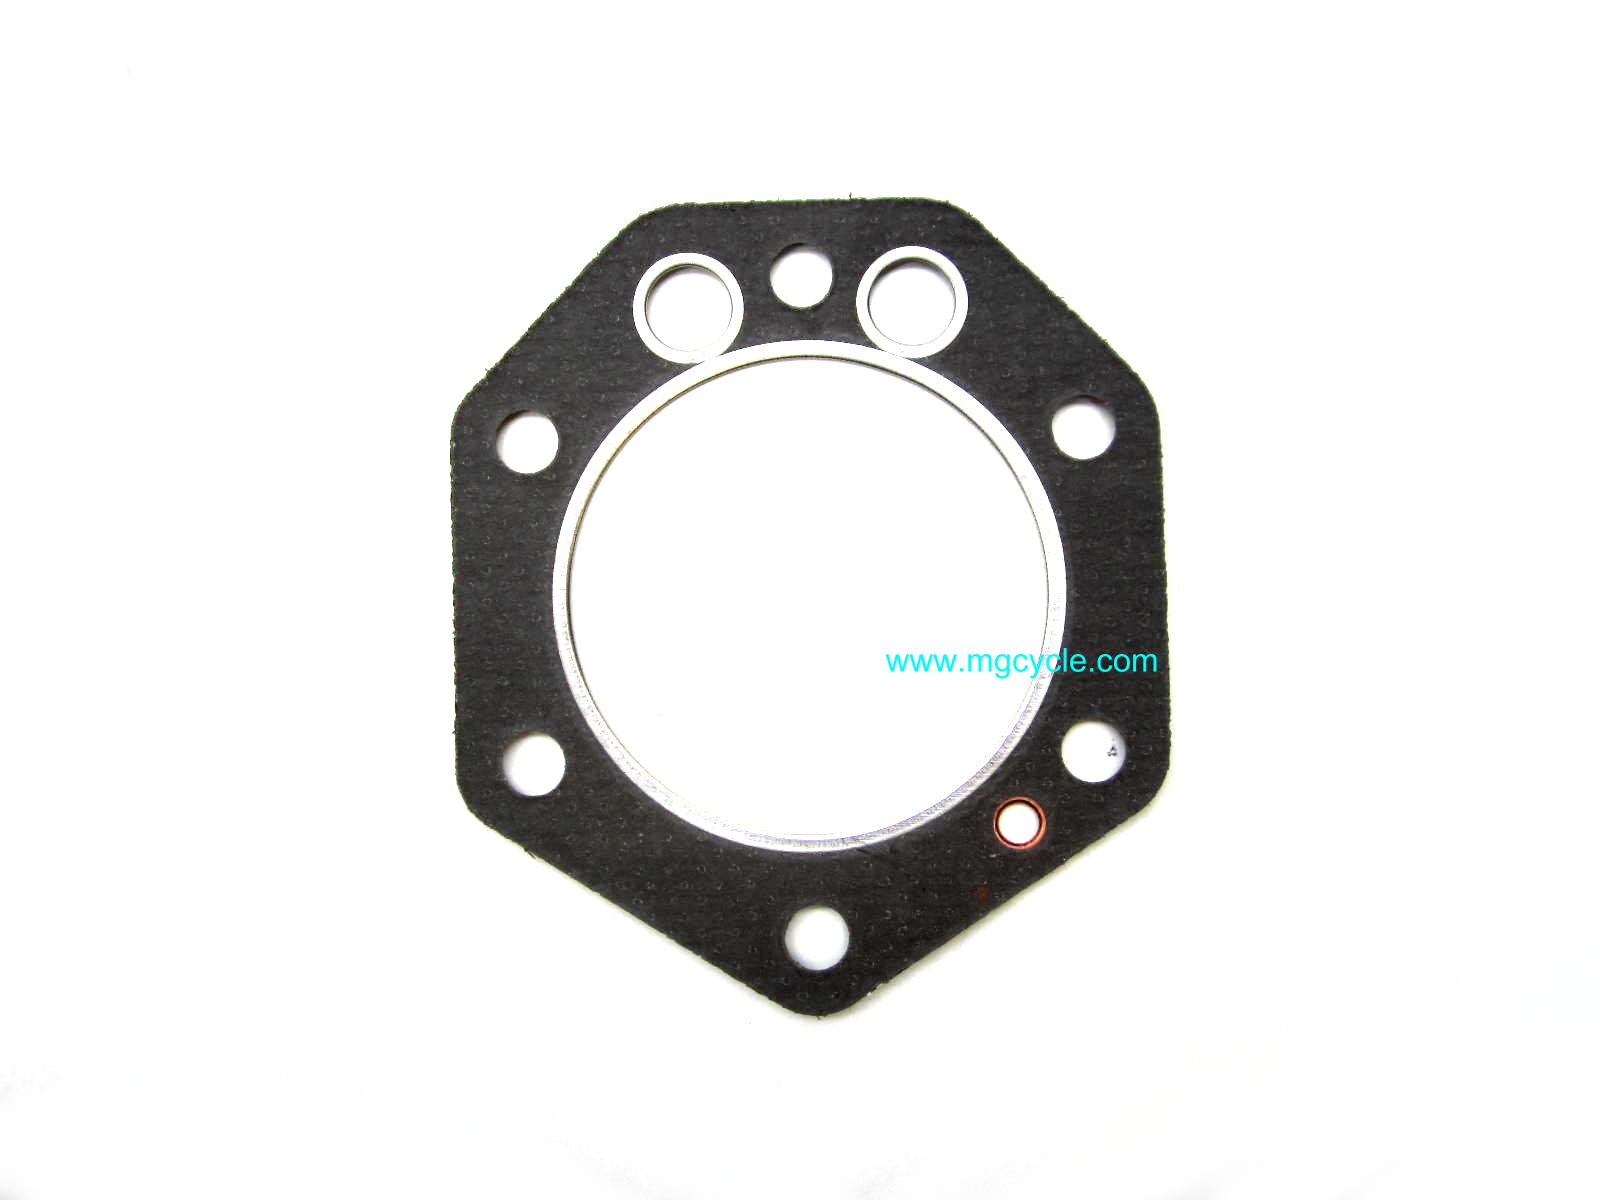 Head gasket for V700 GU12022000